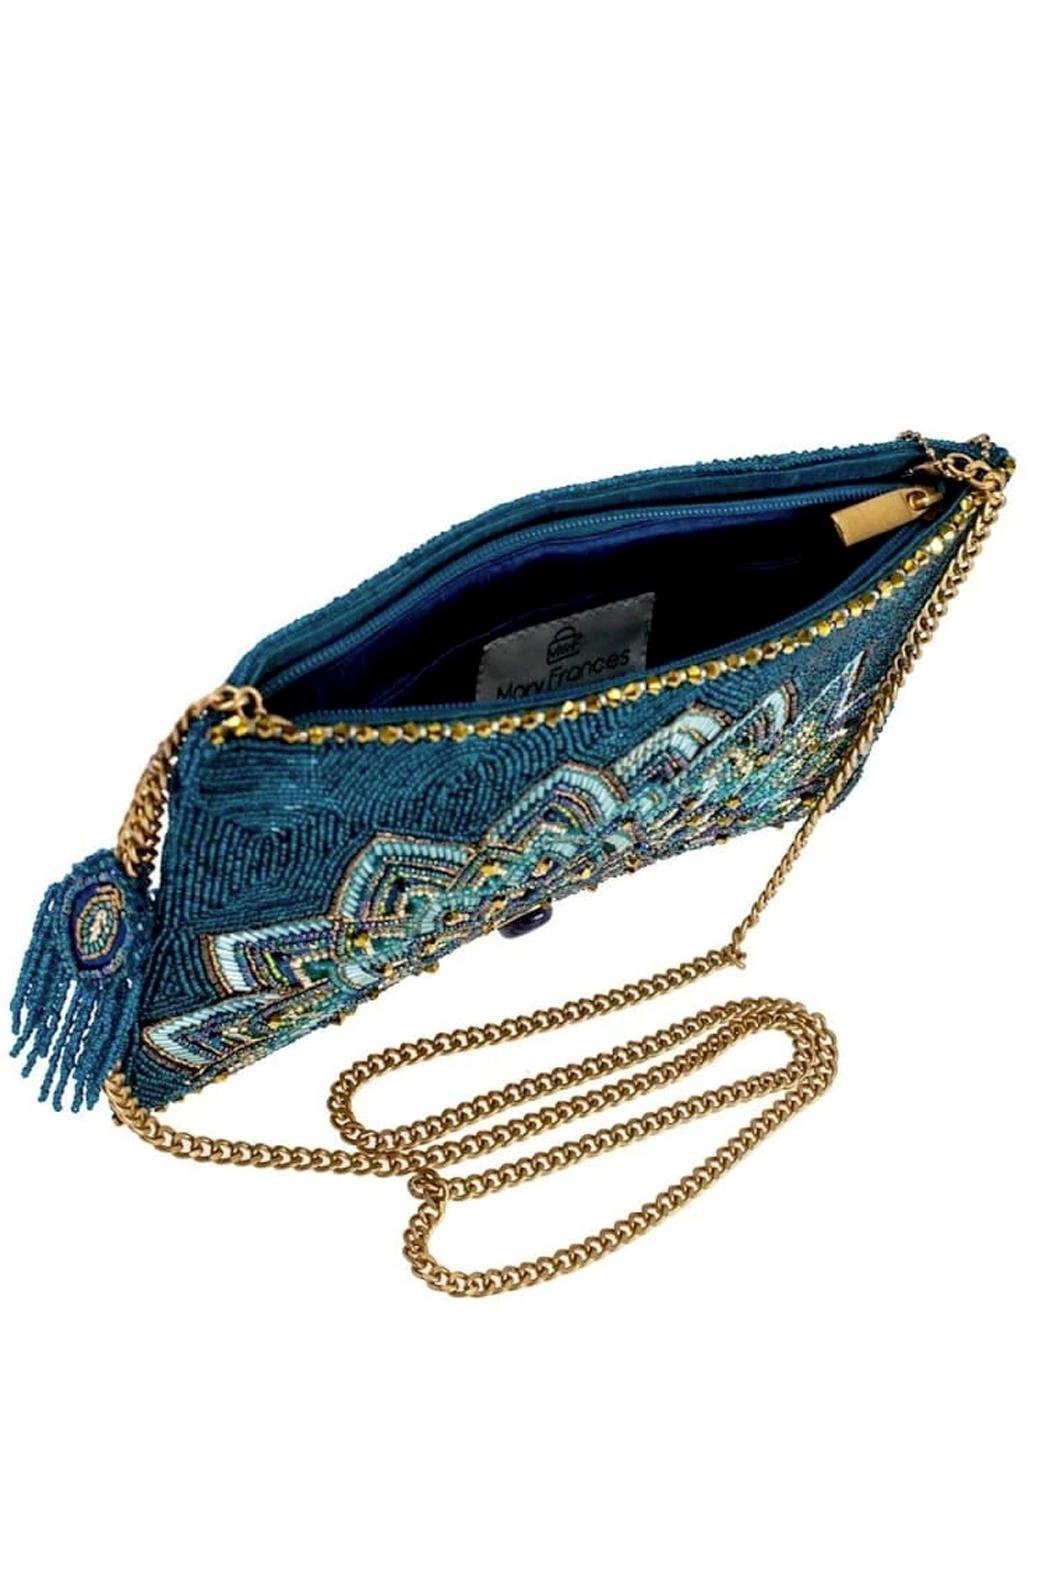 Mary Frances Passion Peacock - Princess Jasmine Crossbody - Side Cropped Image